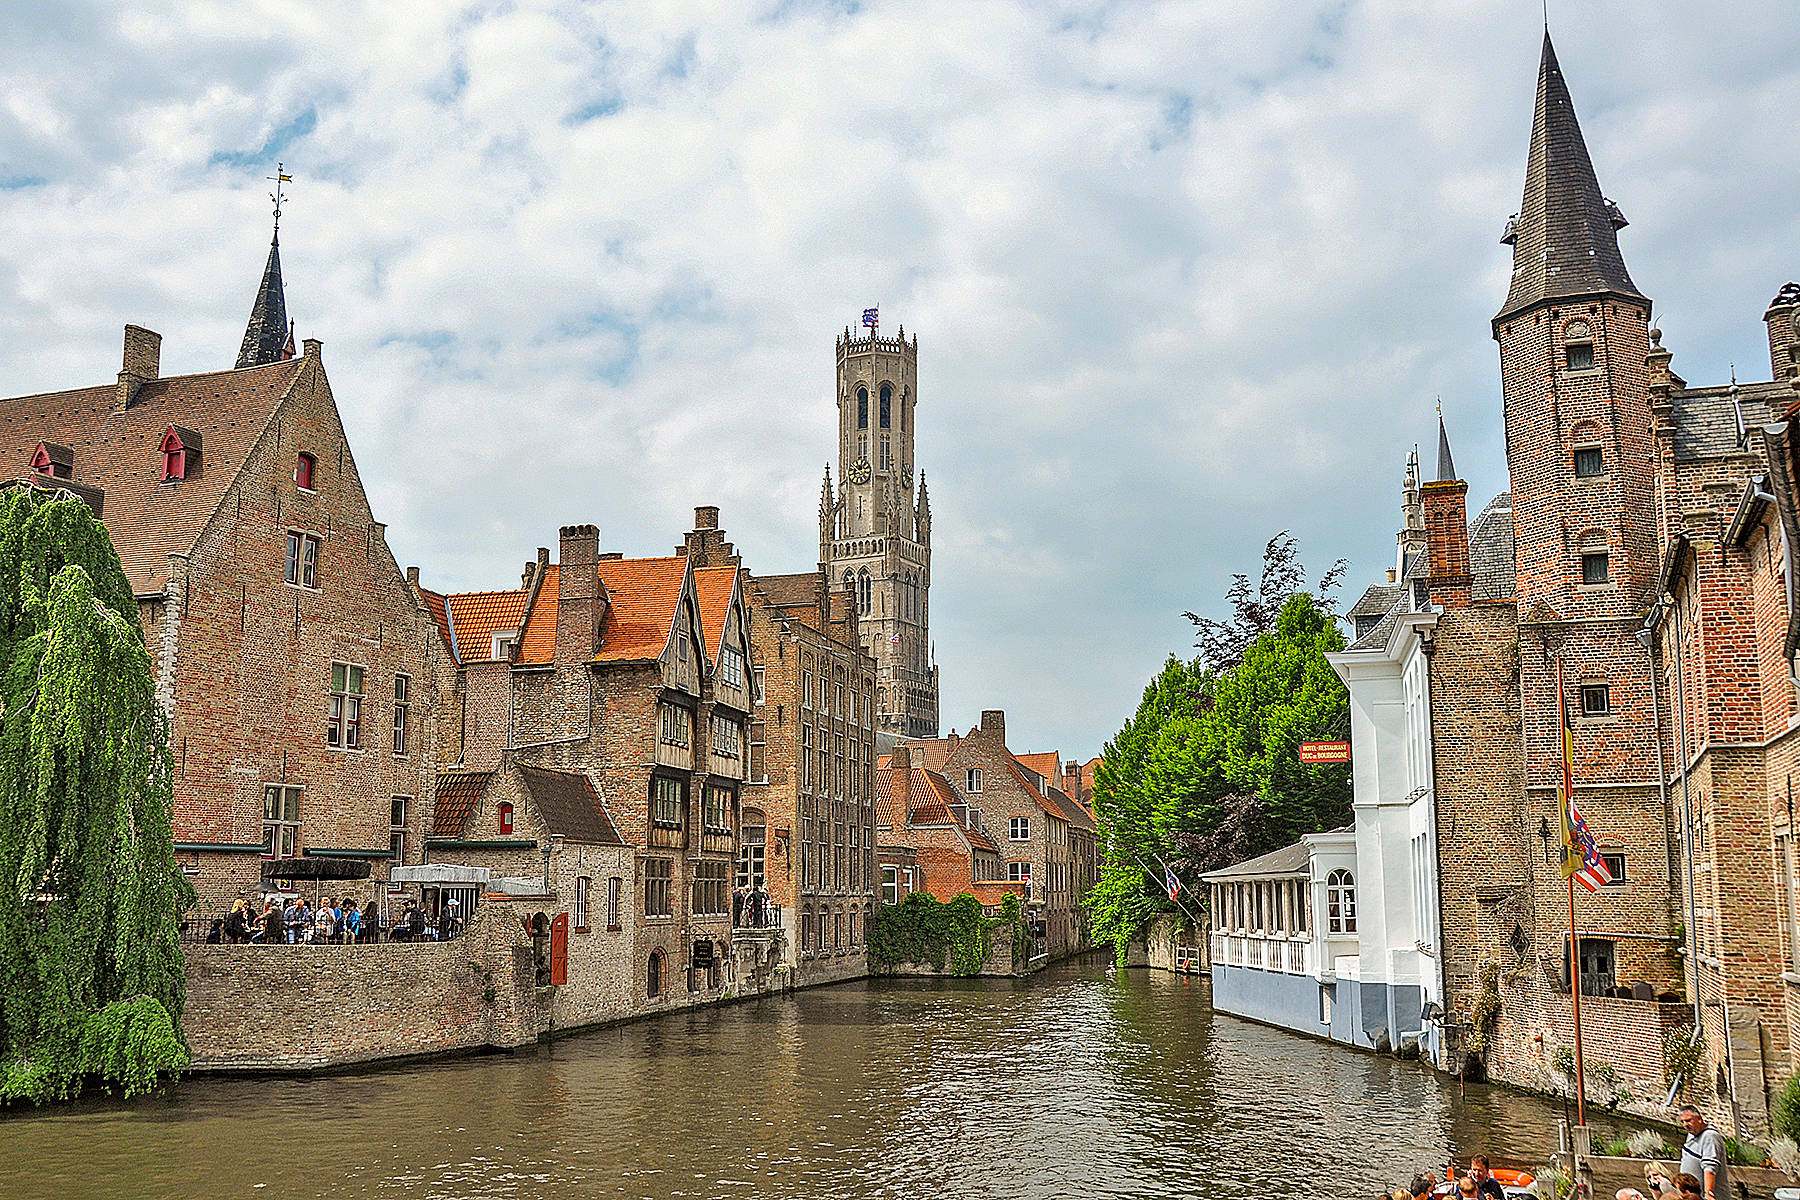 Rick Steves on Bruges, pickled in gothic, sweetened by chocolate